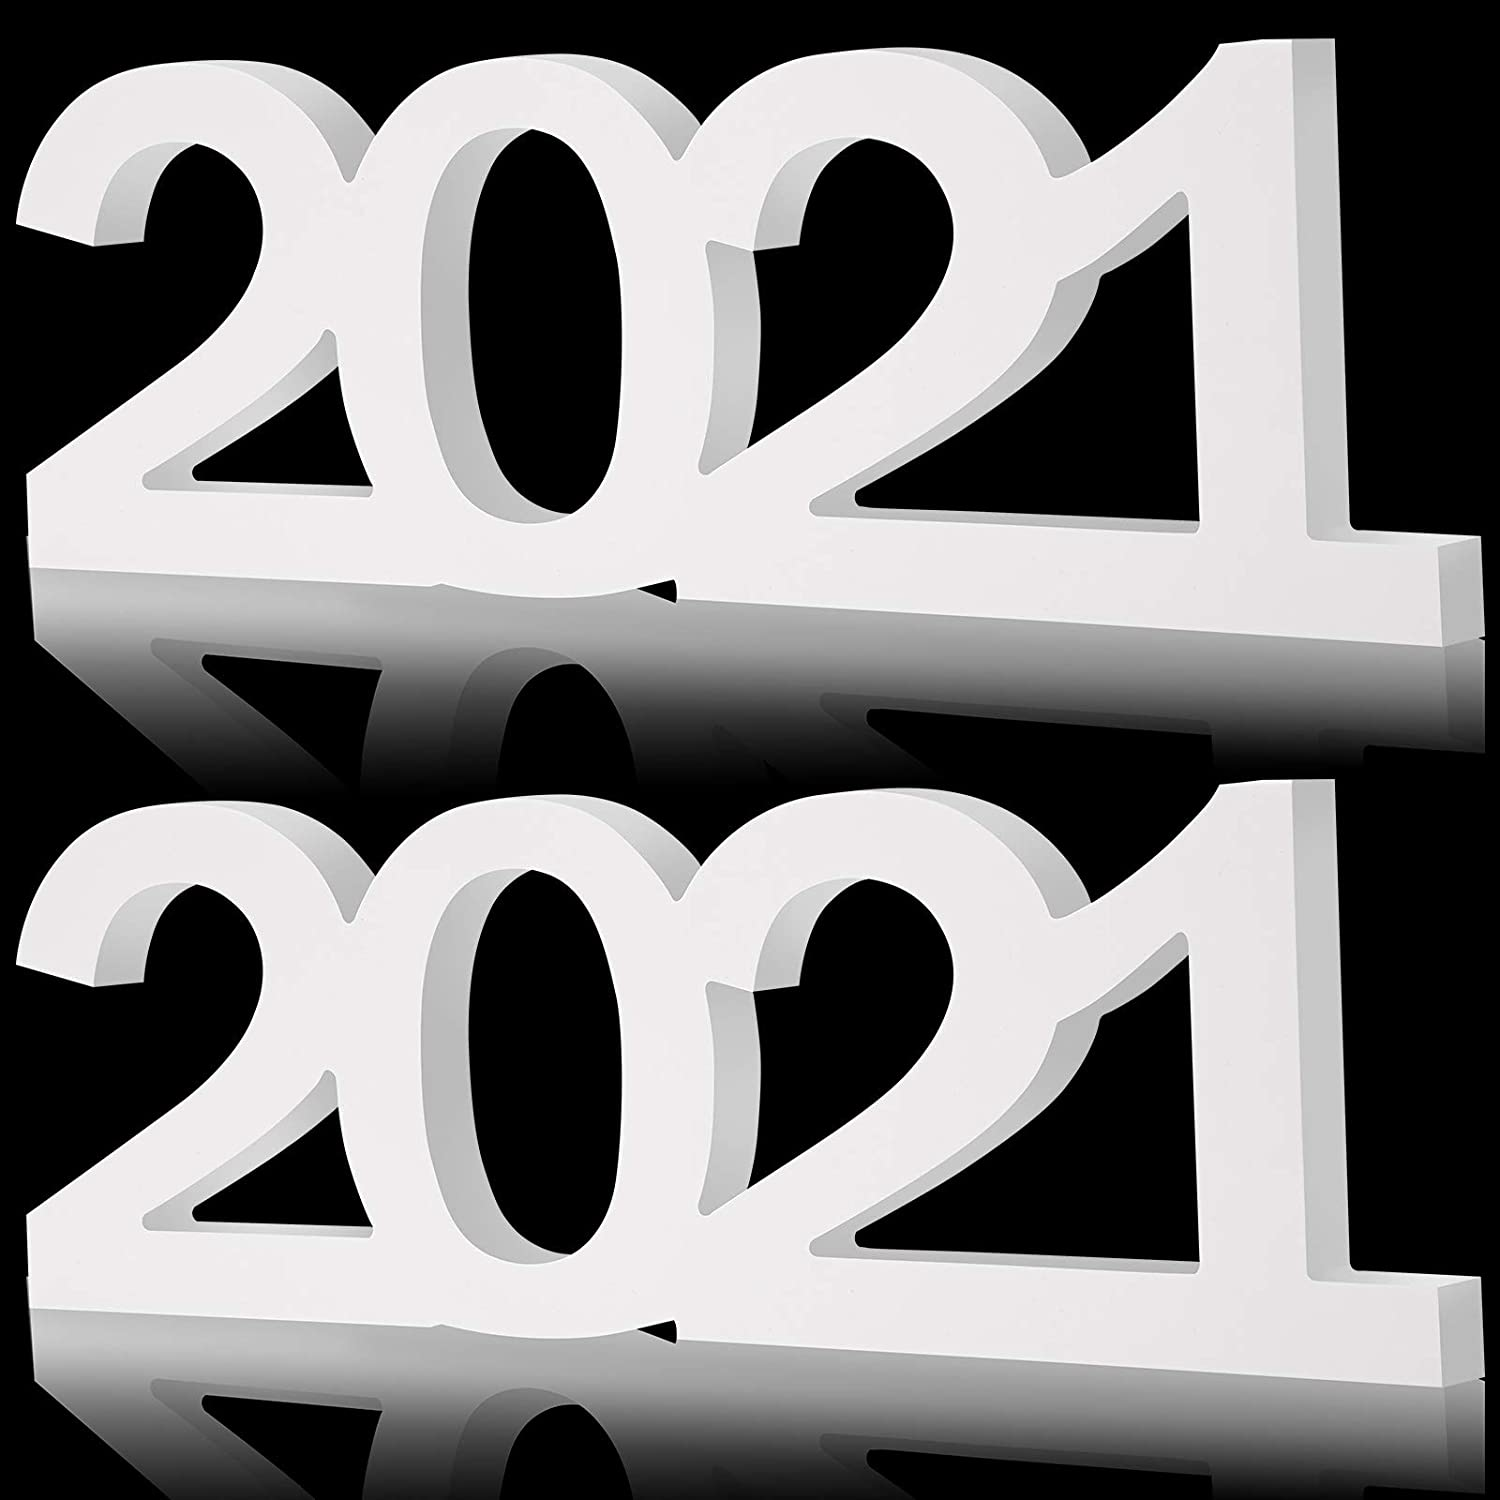 2 Pieces 2021 Wooden Sign Graduation Decorations 2021 Centerpieces 2021 Letter Table Sign Table Free-Standing 2021 Sign for Graduation Party Supplies New Years Holiday Home Decor (White)